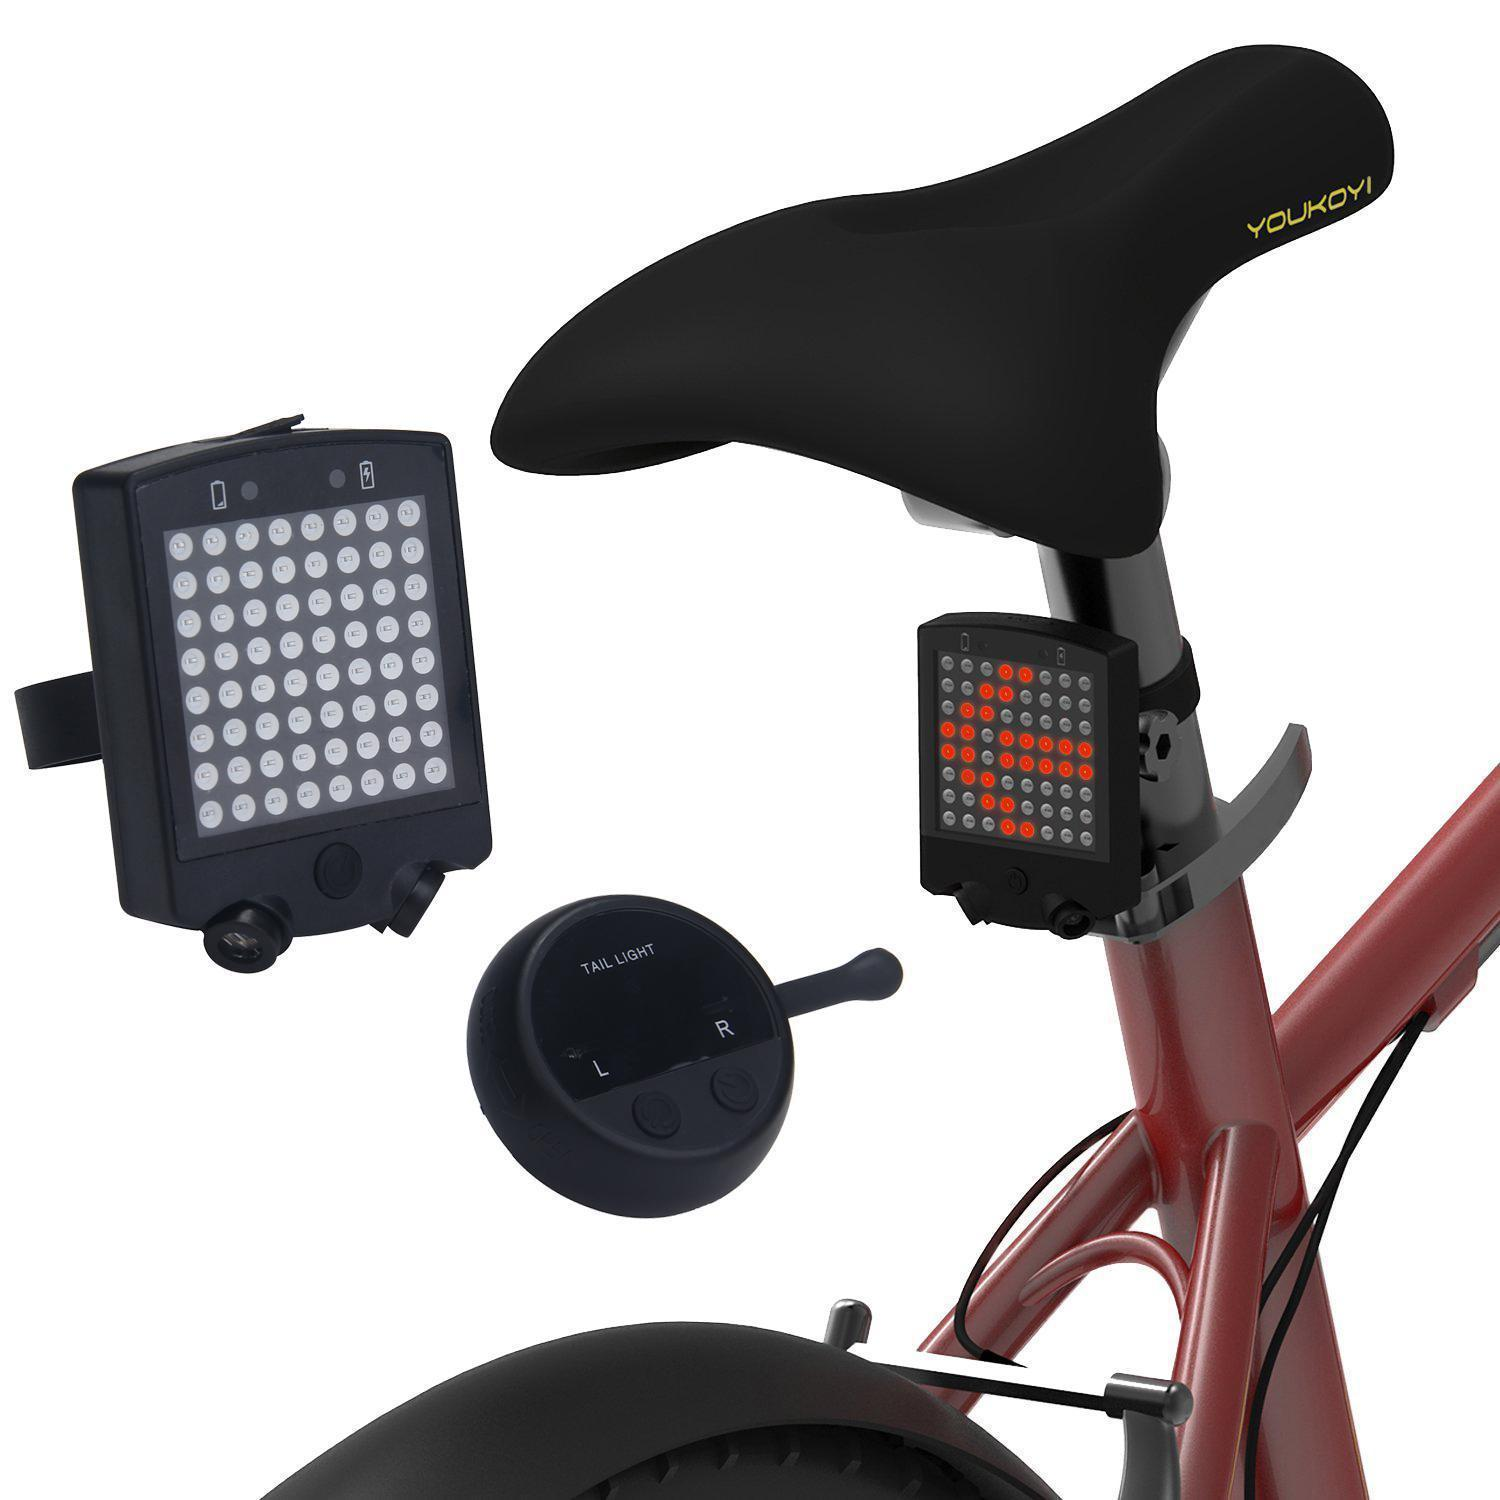 Lighting Cycling Bike Remote Control Turning Light USB Rechargeable Reat Laser Safety Warning Lamp